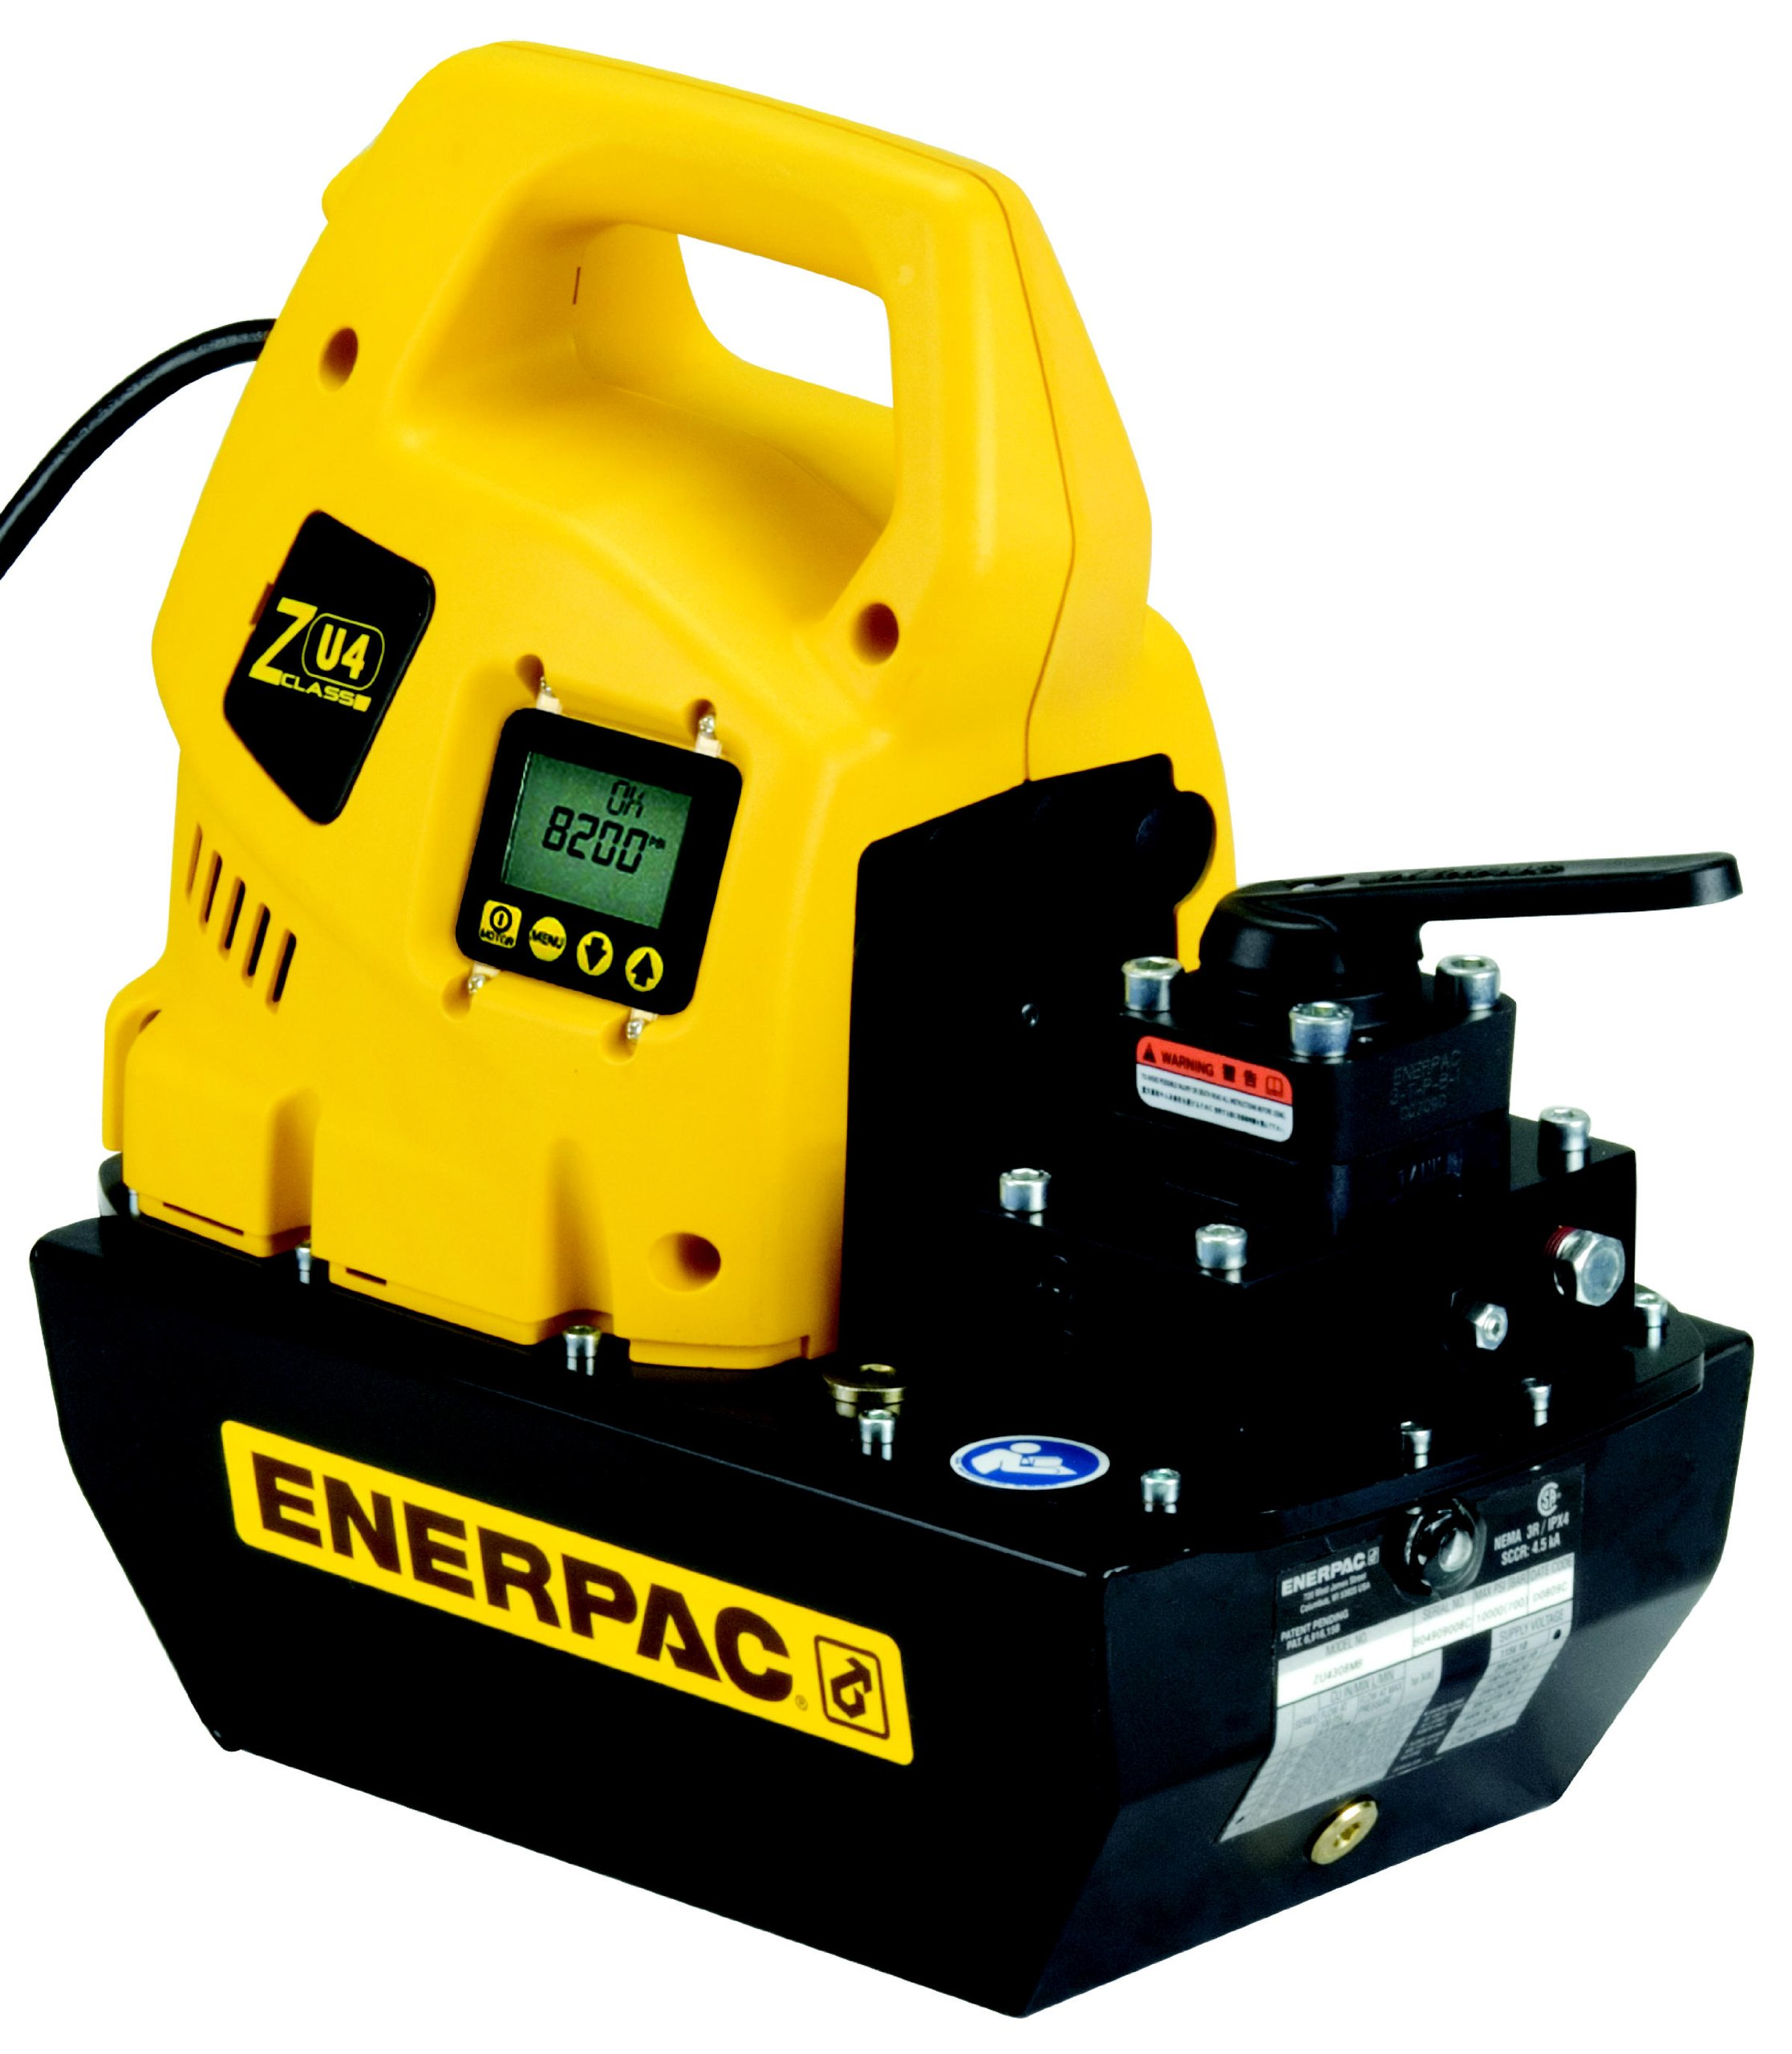 Enerpac ZU4308KB Universal Electric Pump with VM33 Jog Valve Liquid Crystal Display 115V and 8 L Usable Oil Capacity